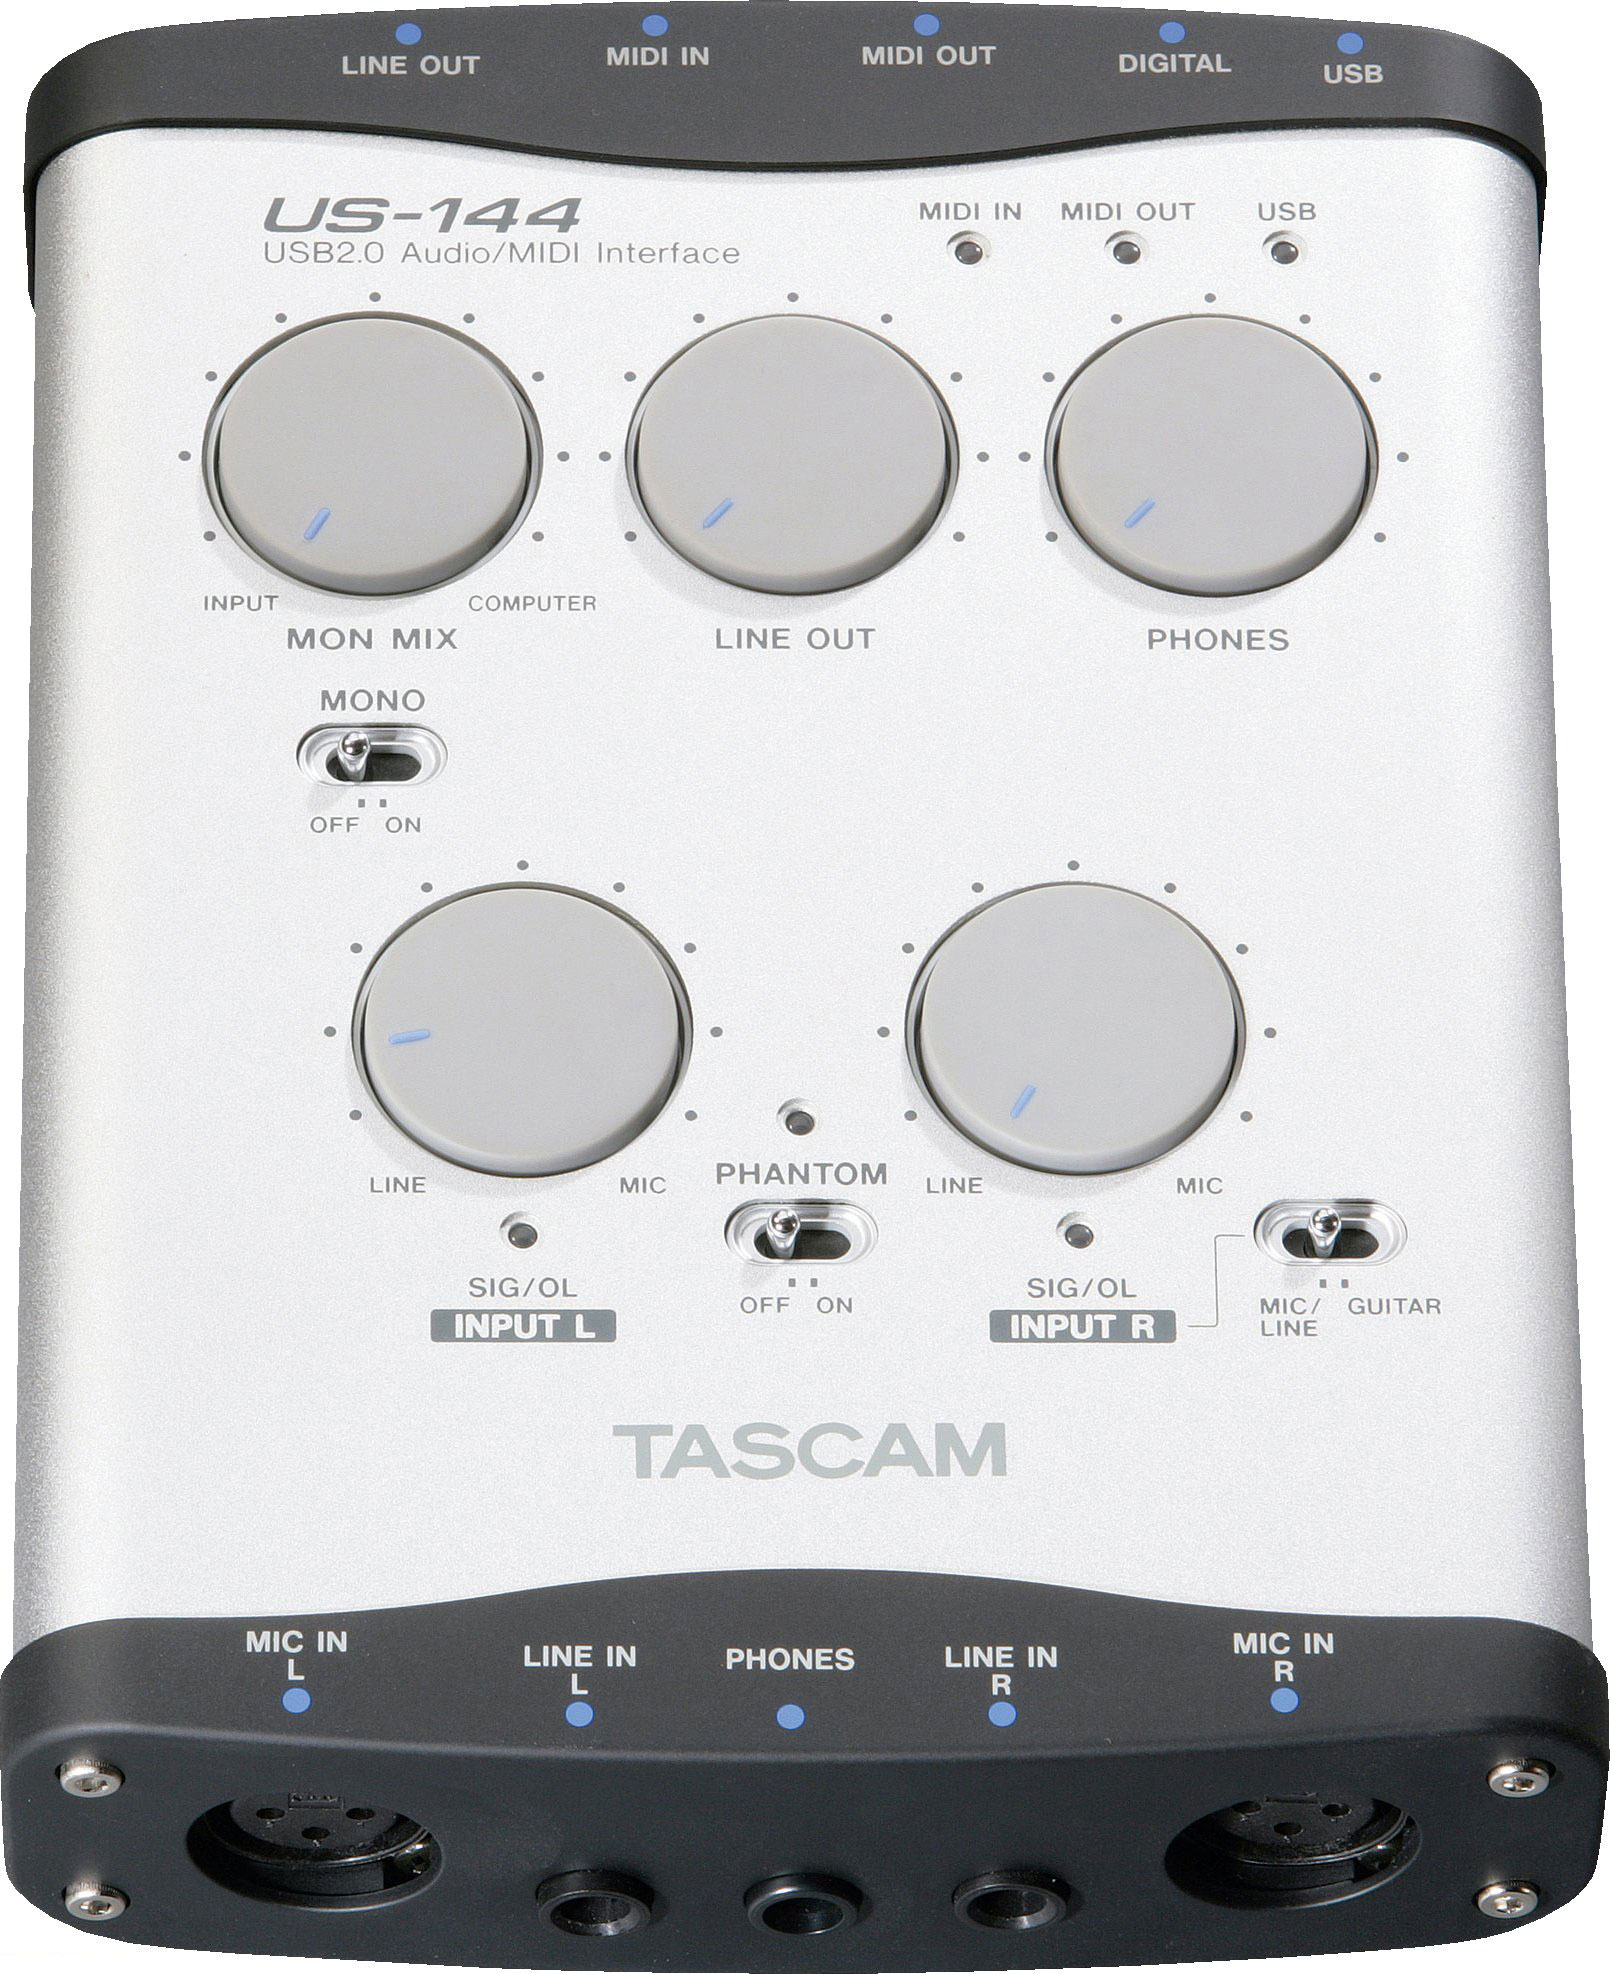 Pro Category Products Center Tascam Us 144 Tascam Us 144